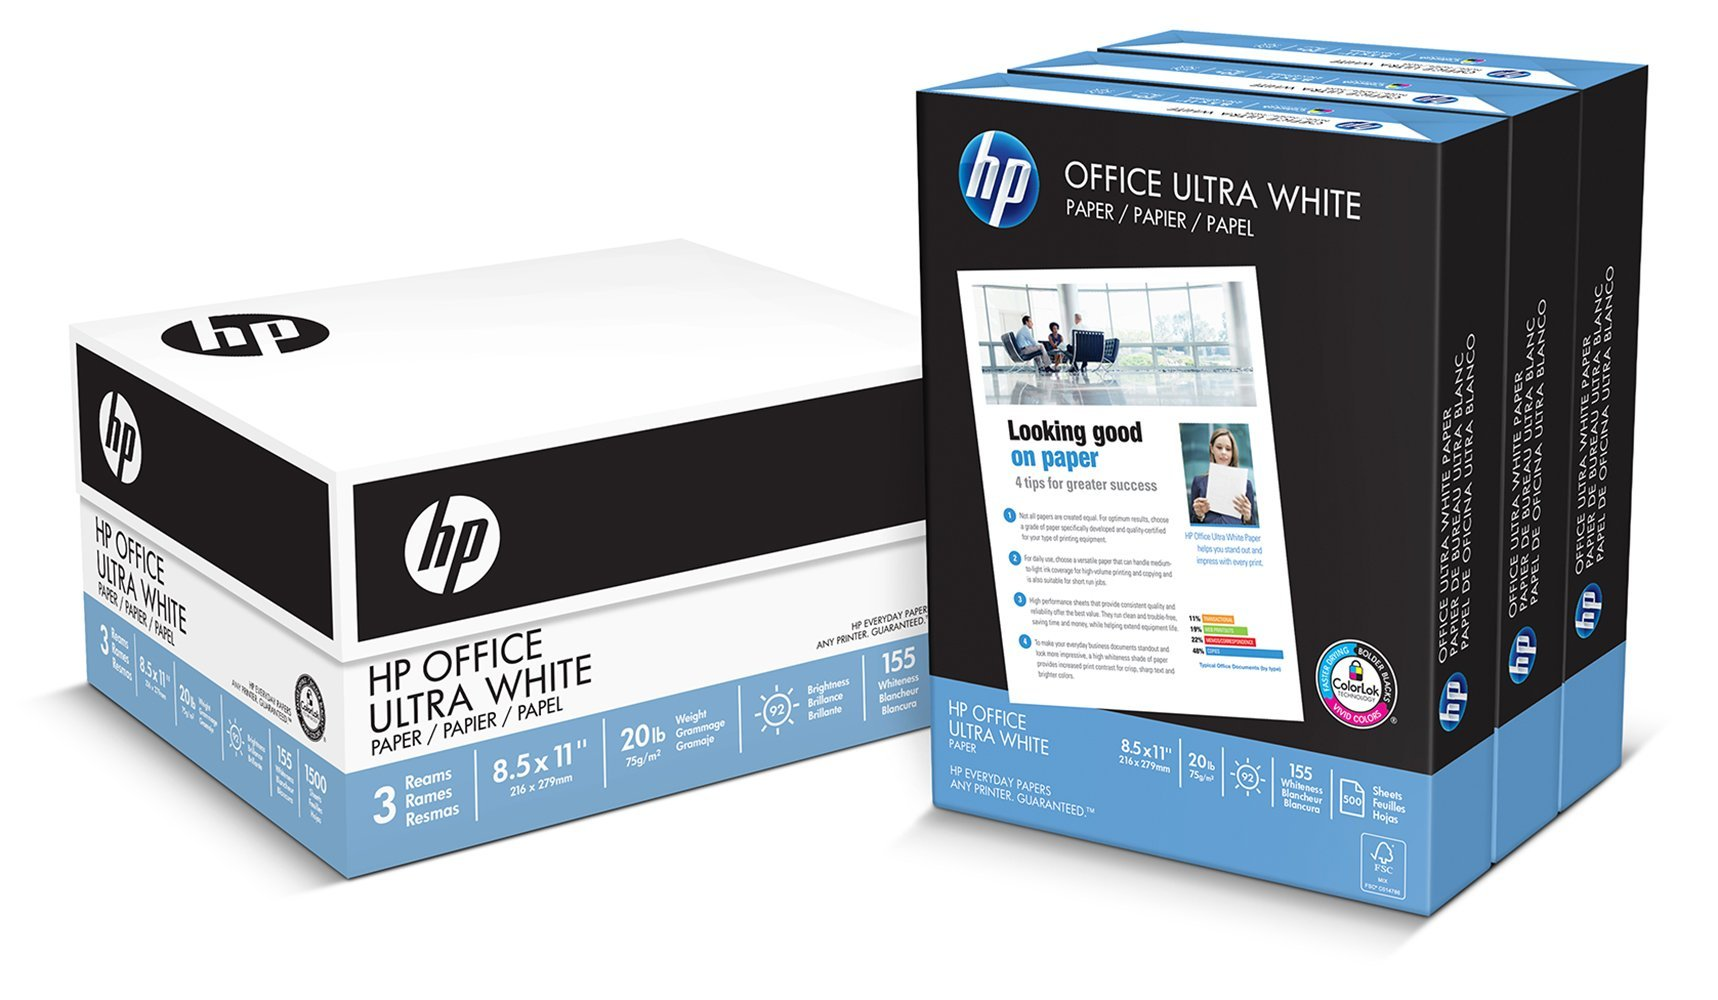 Hp Paper Office Ultra White 20Lb 8.5X11 92 Bright 1500 Sheets / 3 Ream Case C.. 4